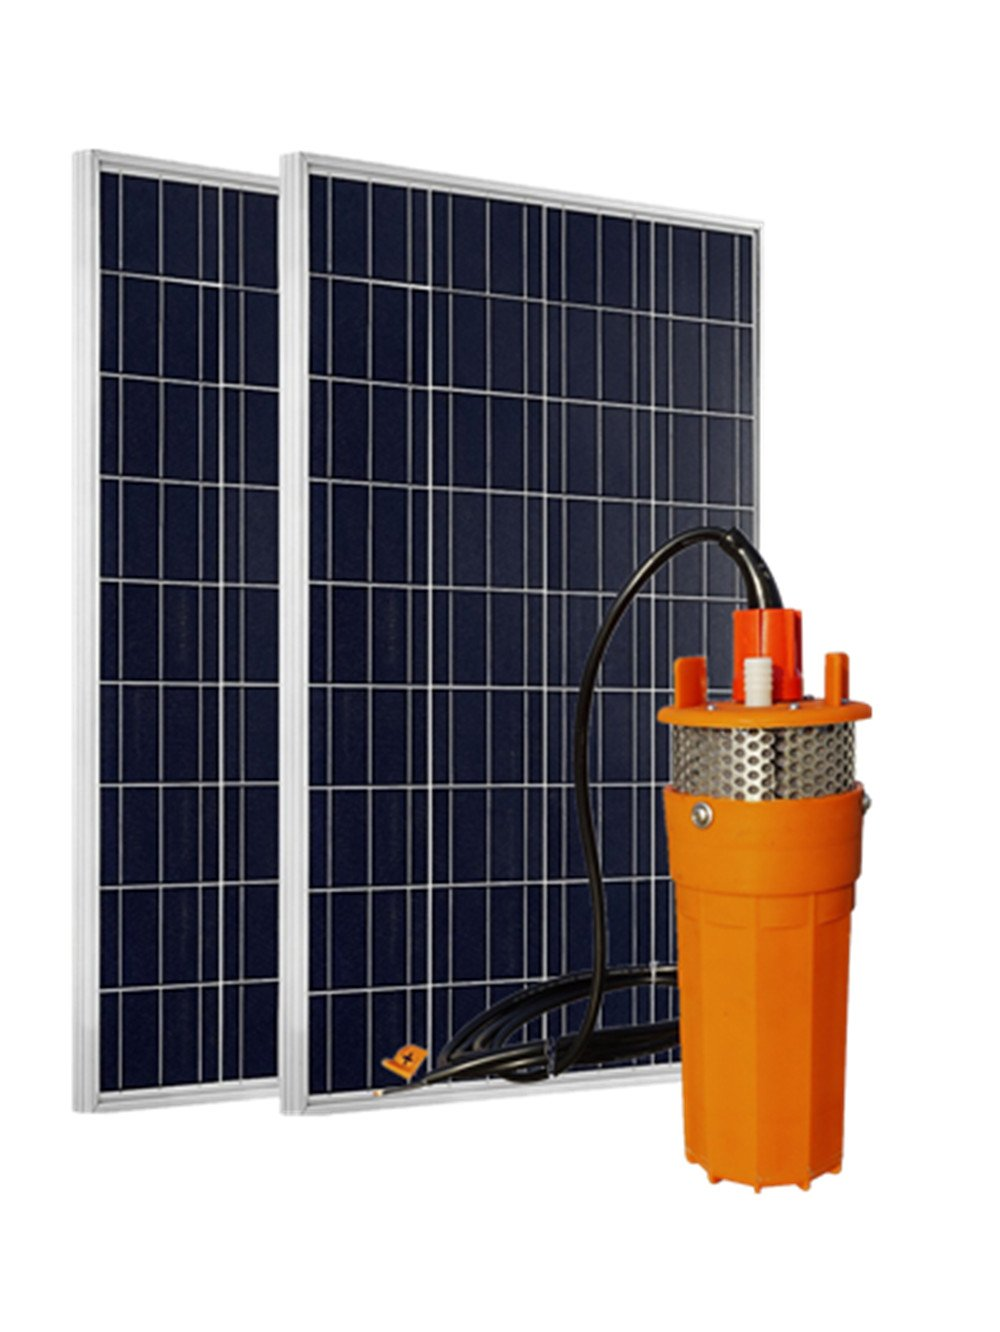 ECO-WORTHY 24 Volts Solar Power Water System: 2pcs 100W Polycrystalline PV Solar Panel + 1pc 24V Stainless Strainer Submersible Solar Water Pump